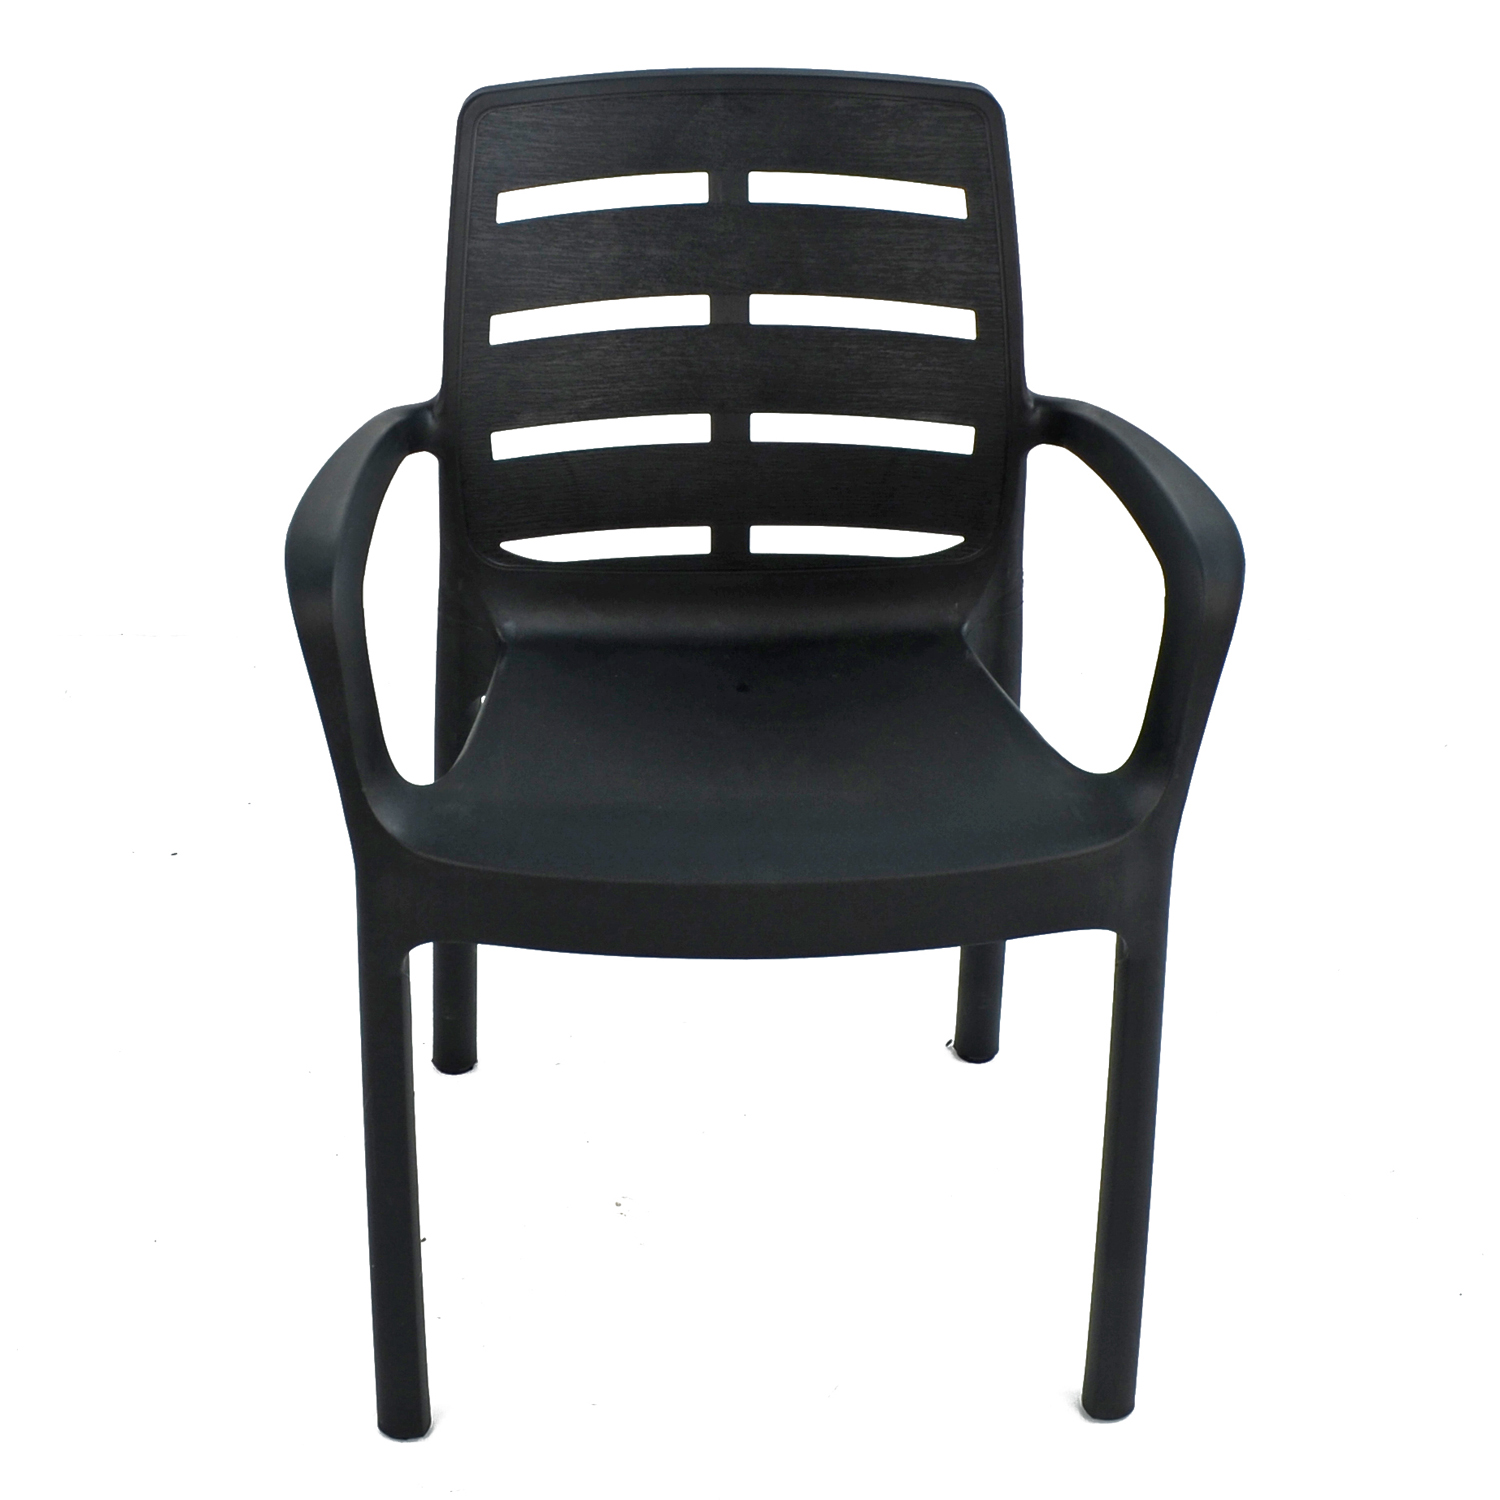 SIENA CHAIR ANTHRACITE FRONT